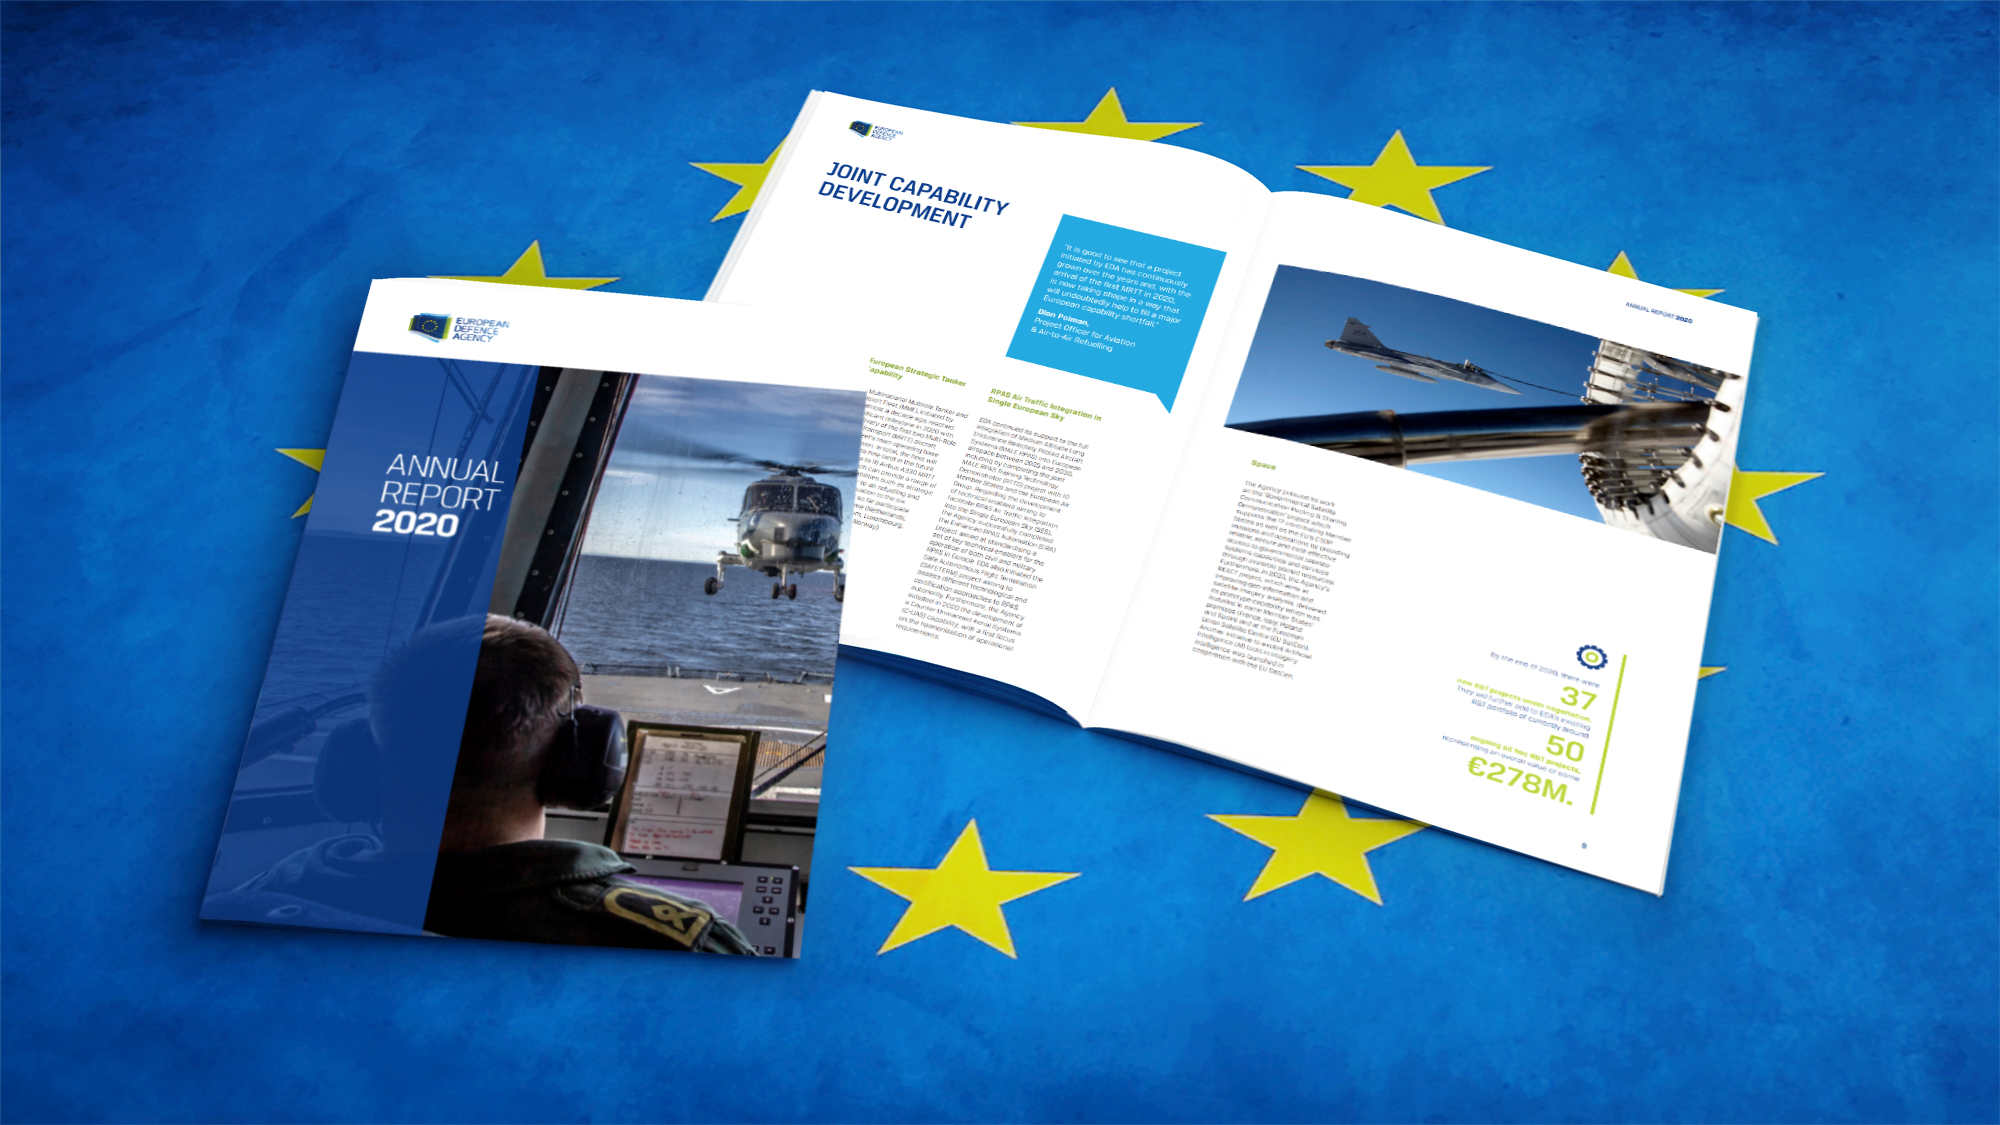 EDA's Annual Report 2020 is out!